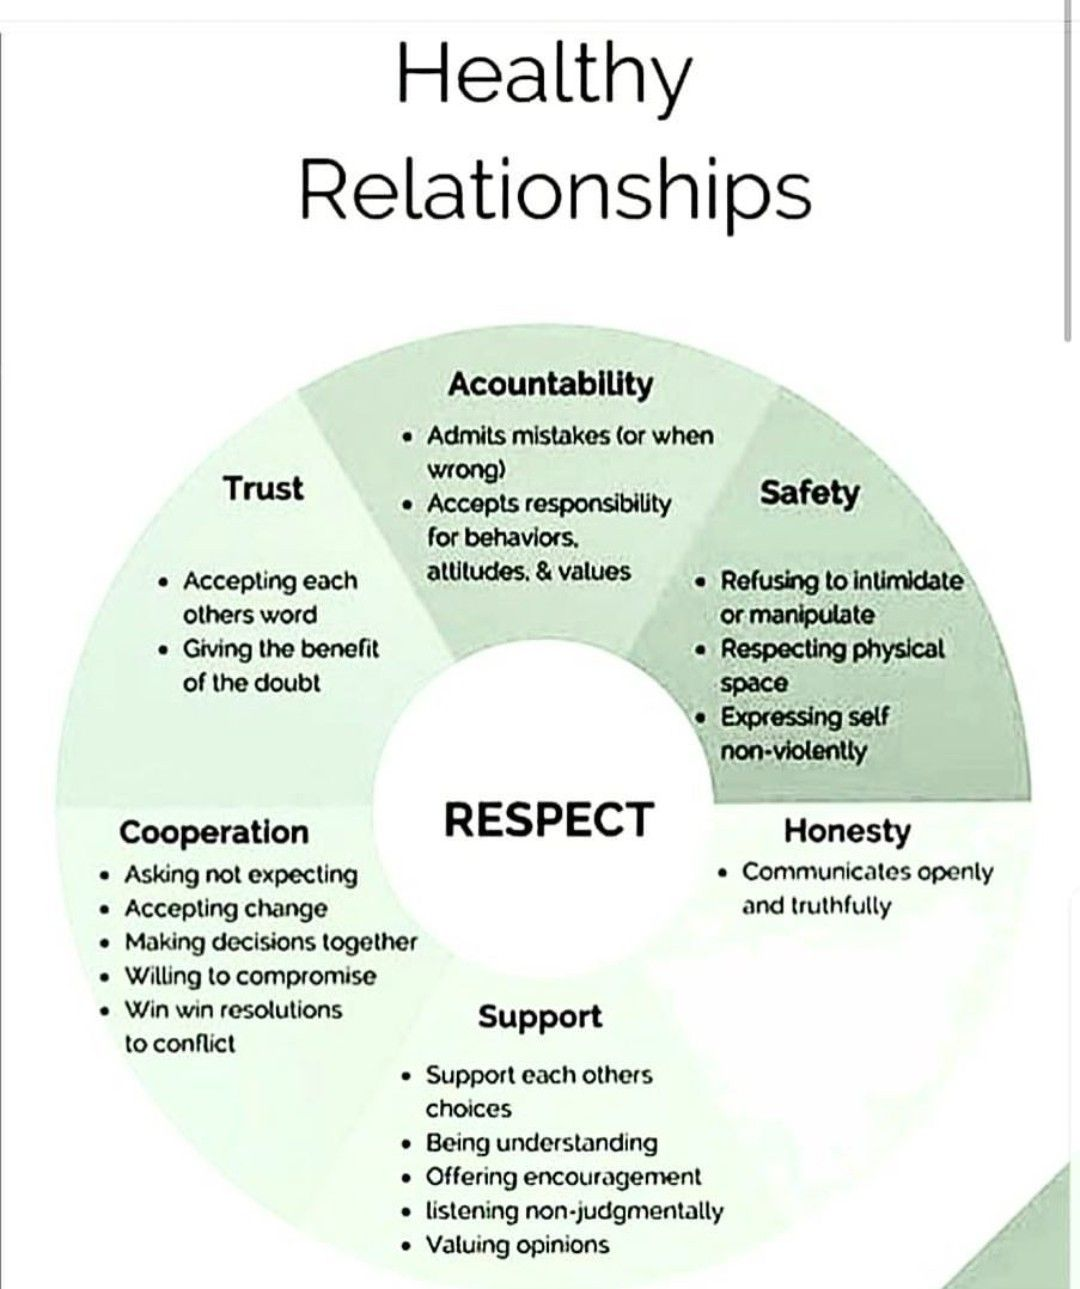 Pin by Elise Lim on Words | Healthy relationships ...